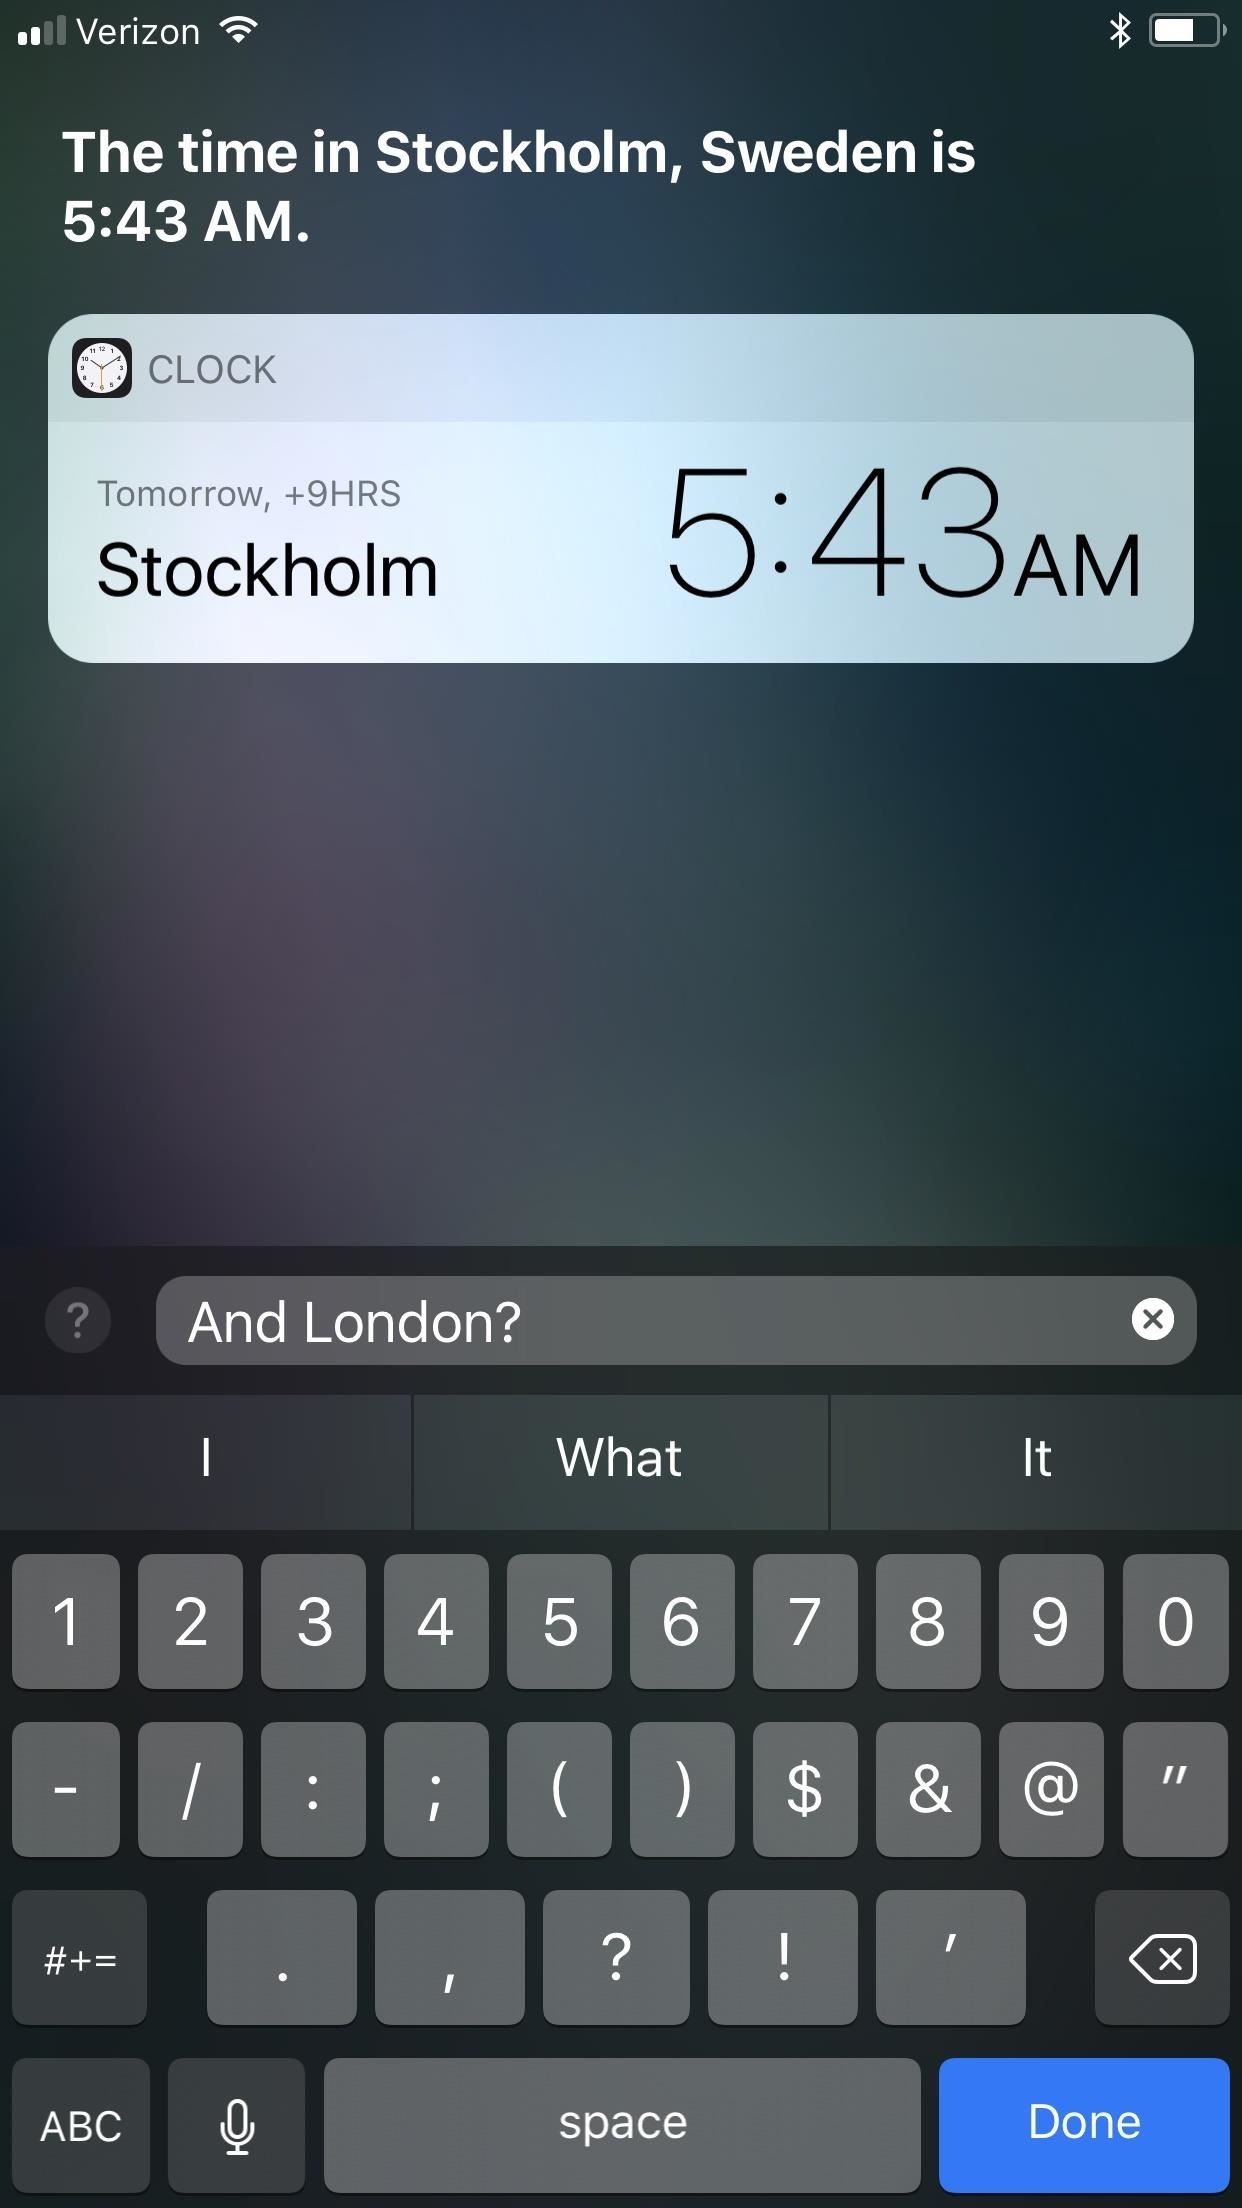 How to Type to Siri in iOS 11 When You Don't Want to Talk